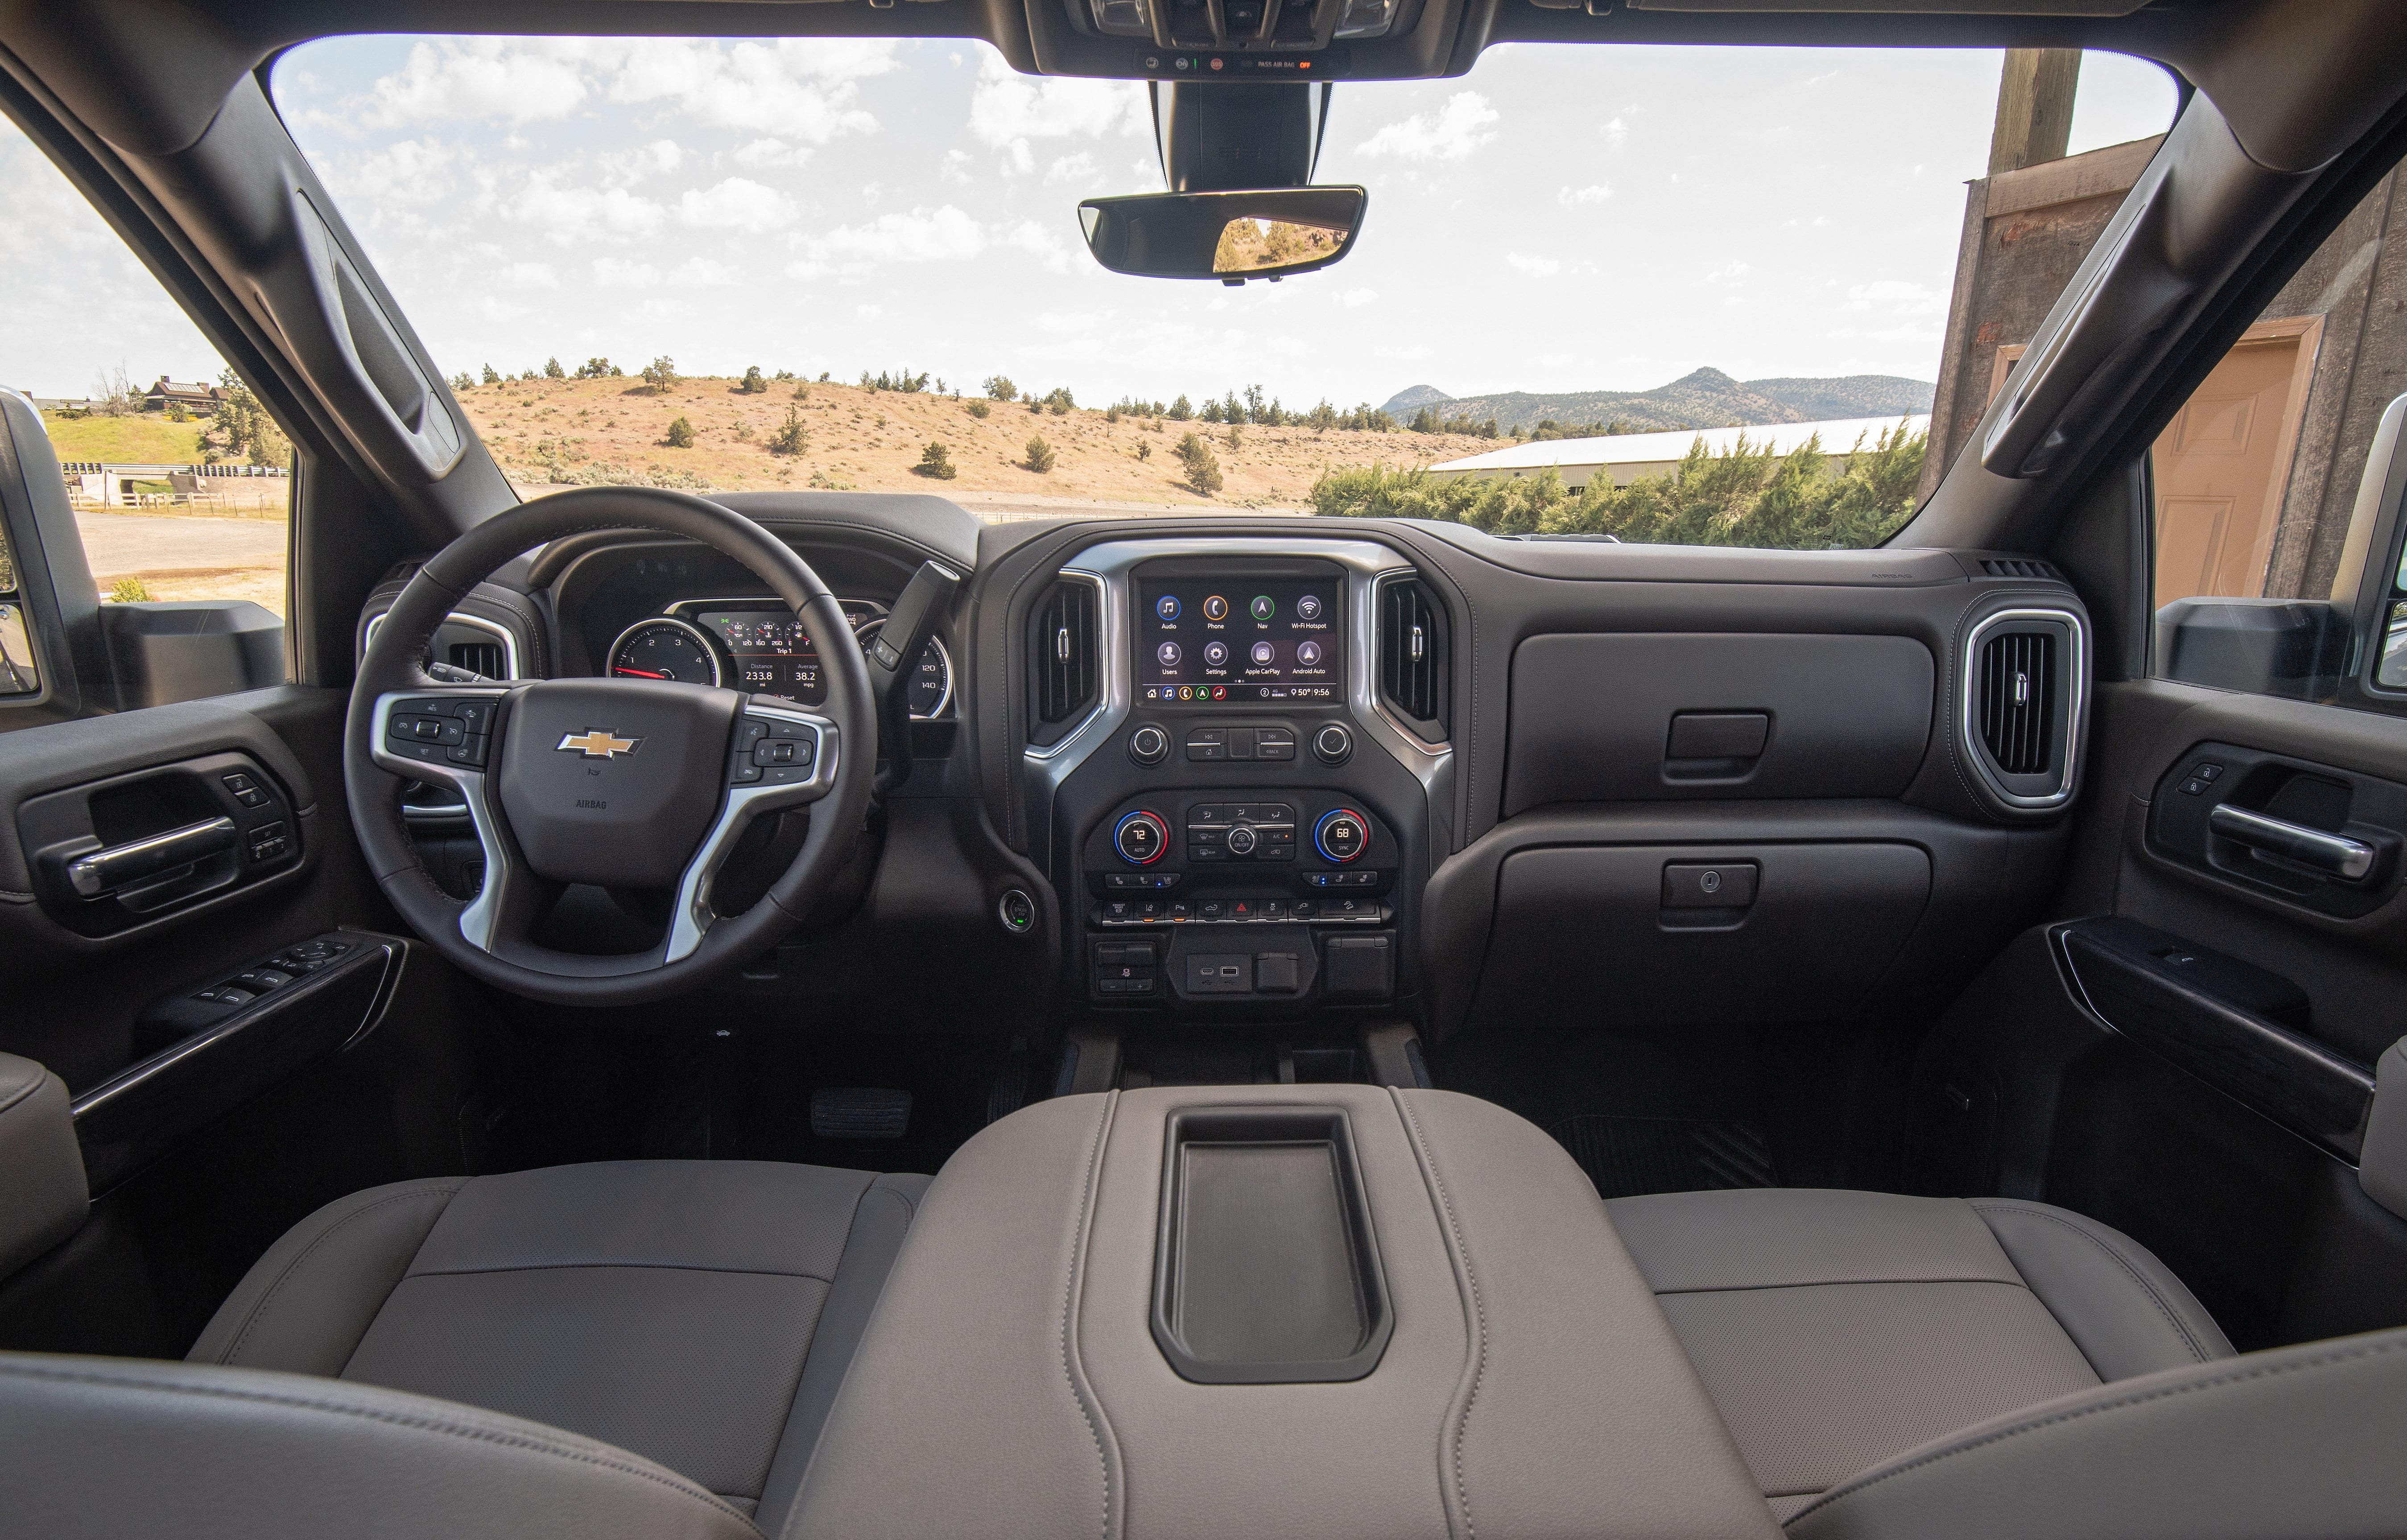 2020 Chevrolet Silverado 2500 HD Z71 interior